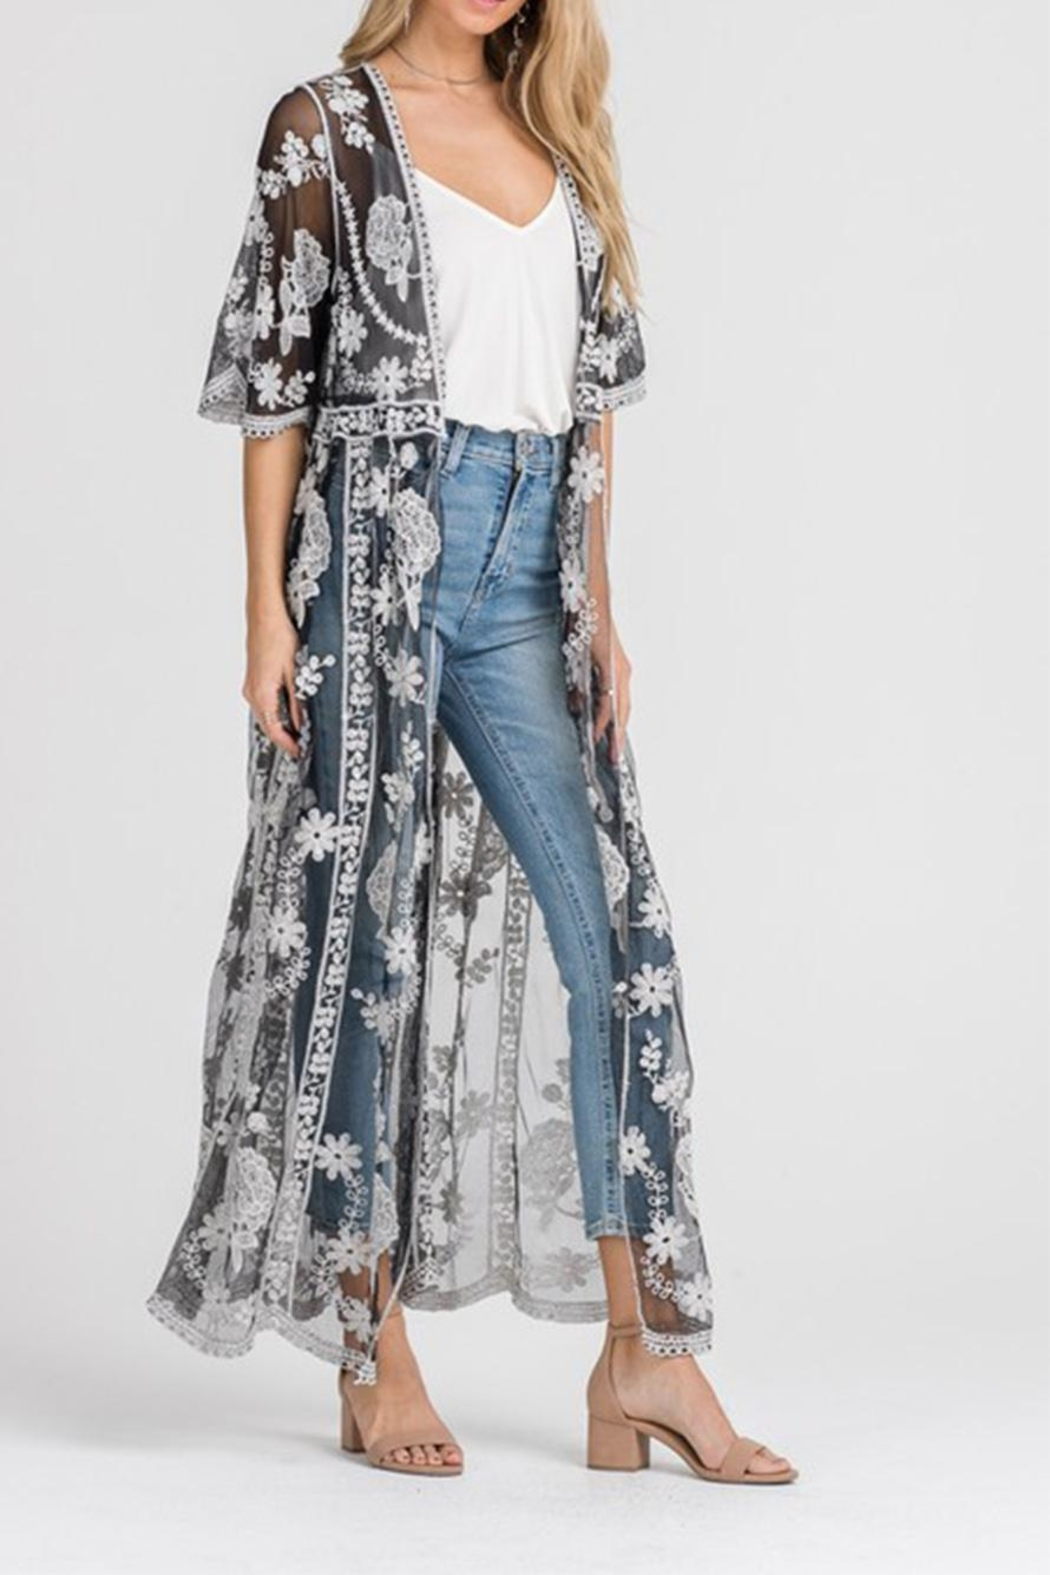 Lush Lace Embroidered Cardigan - Front Full Image